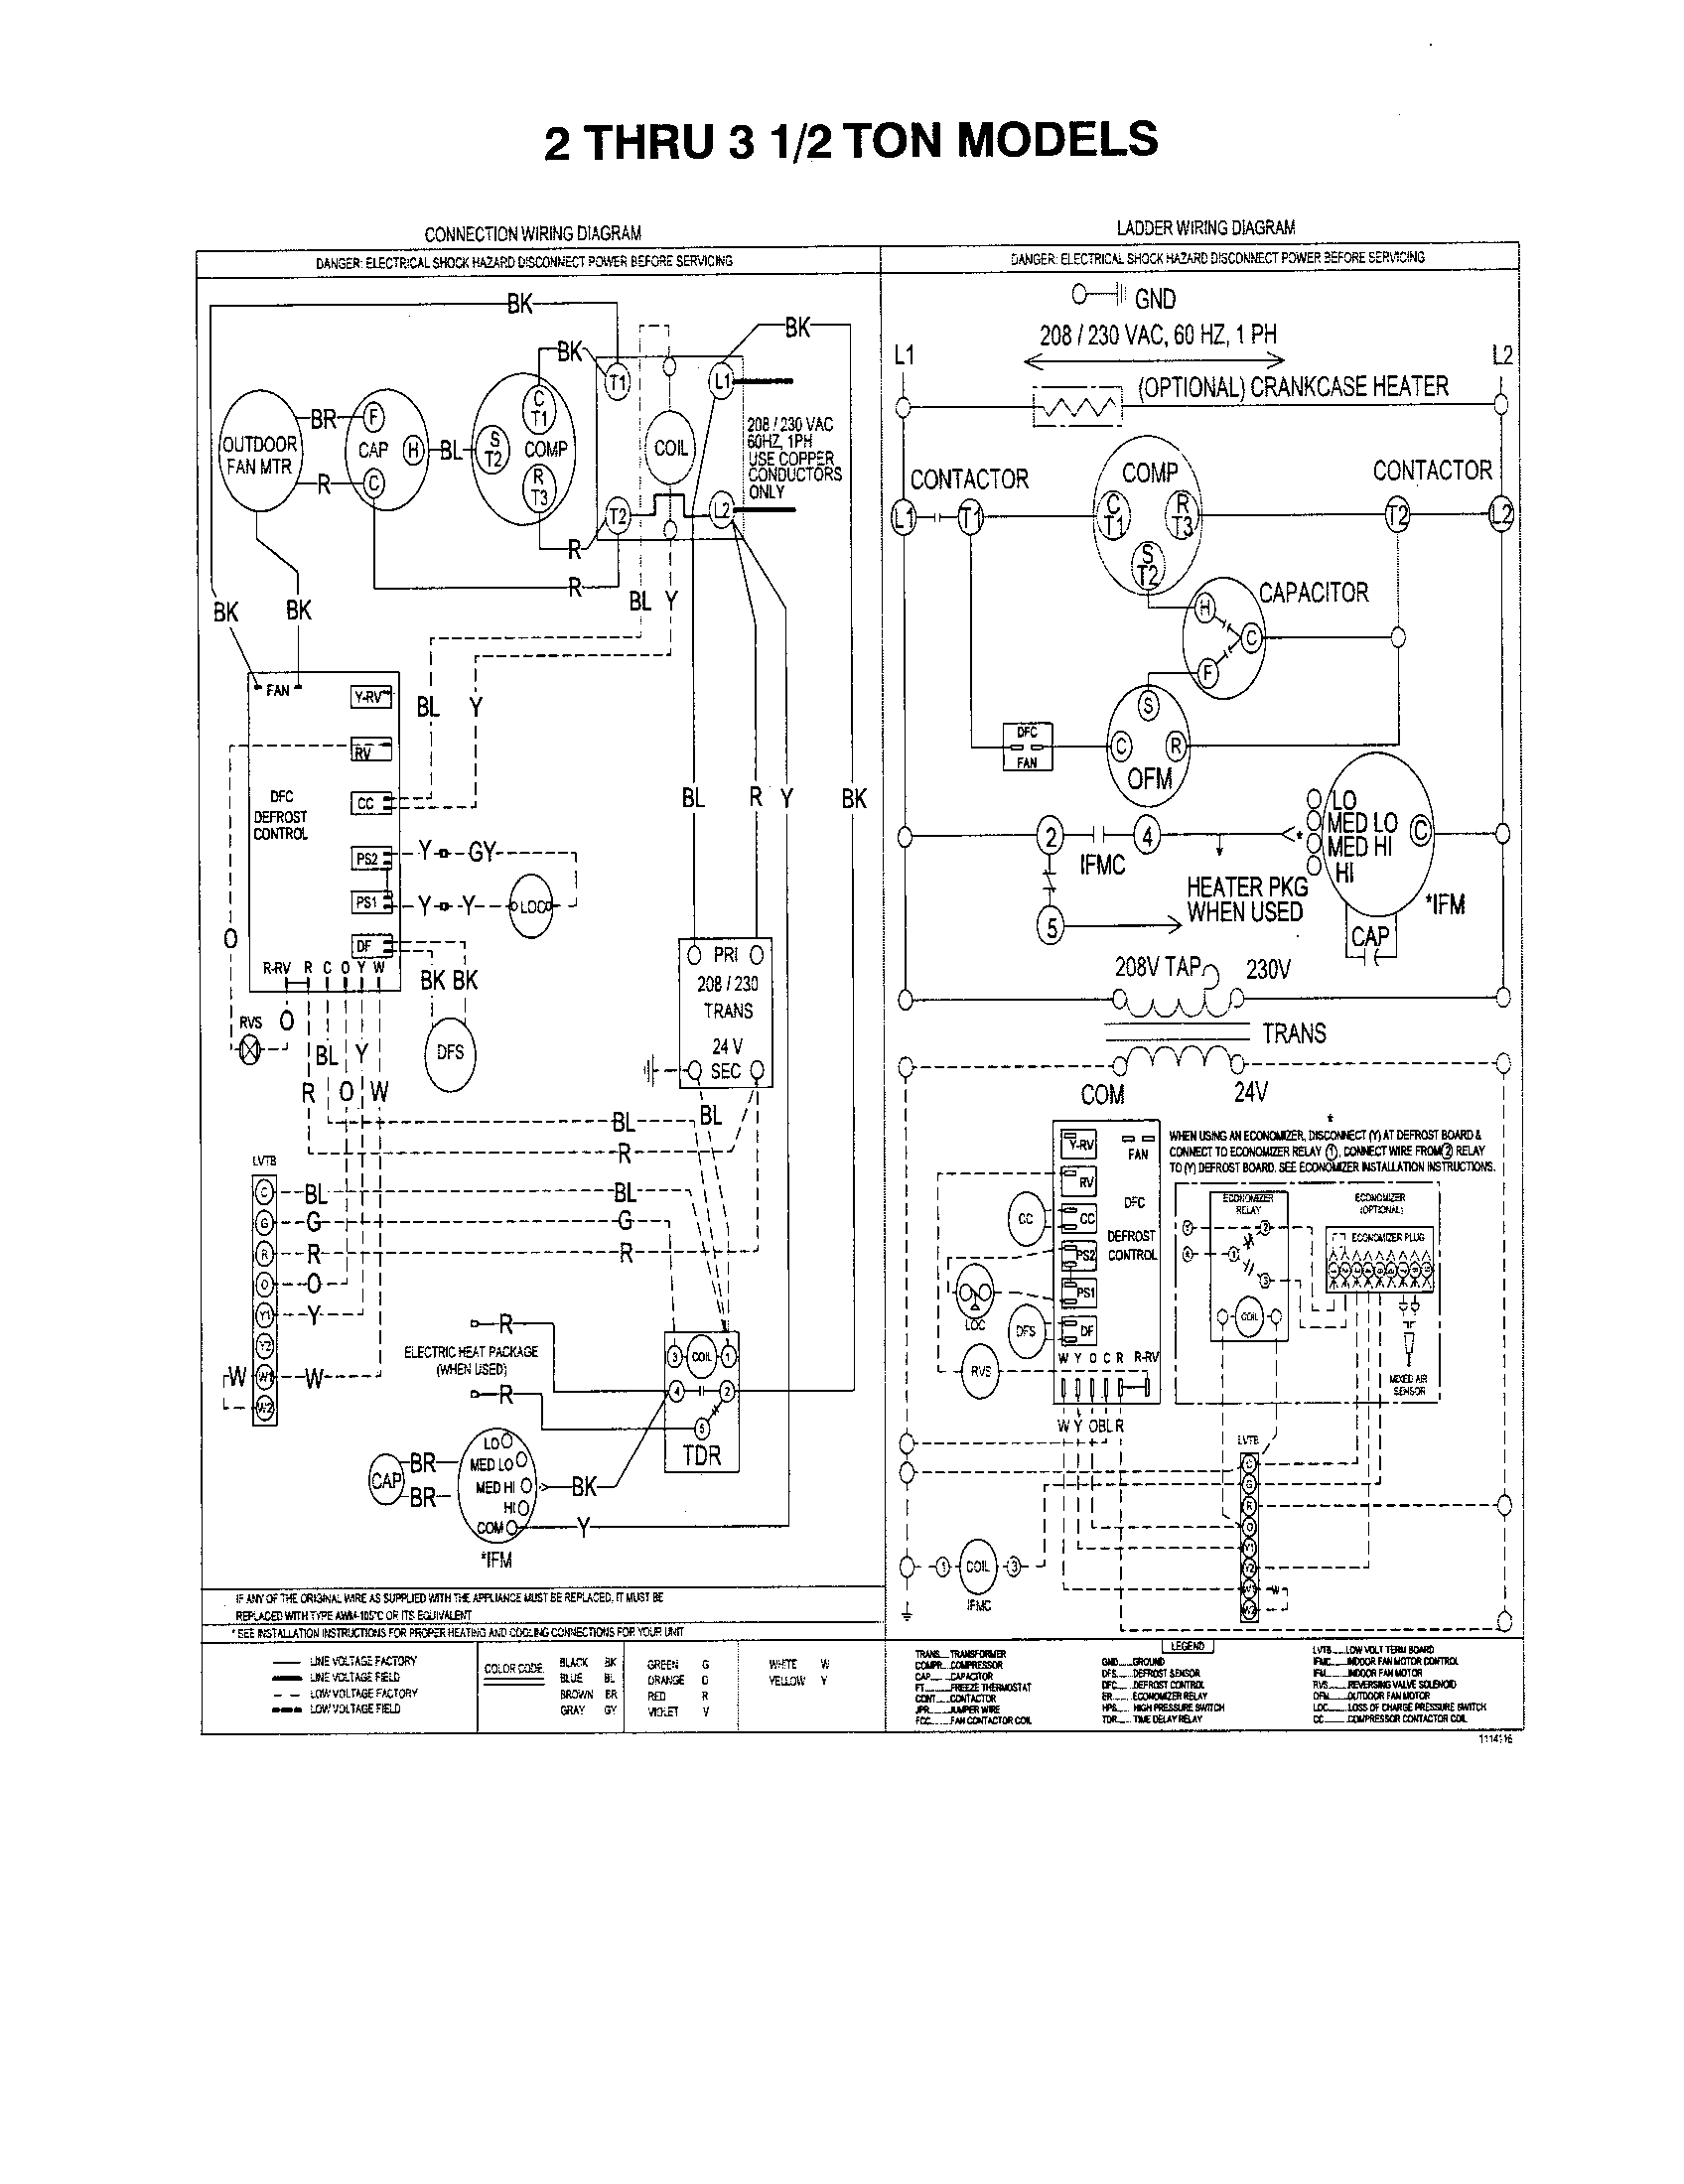 Taskmaster 5100 Heater Wiring Diagram Explained Diagrams Model P3p5150ca1n Interesting Markel Photos Best Image Gas